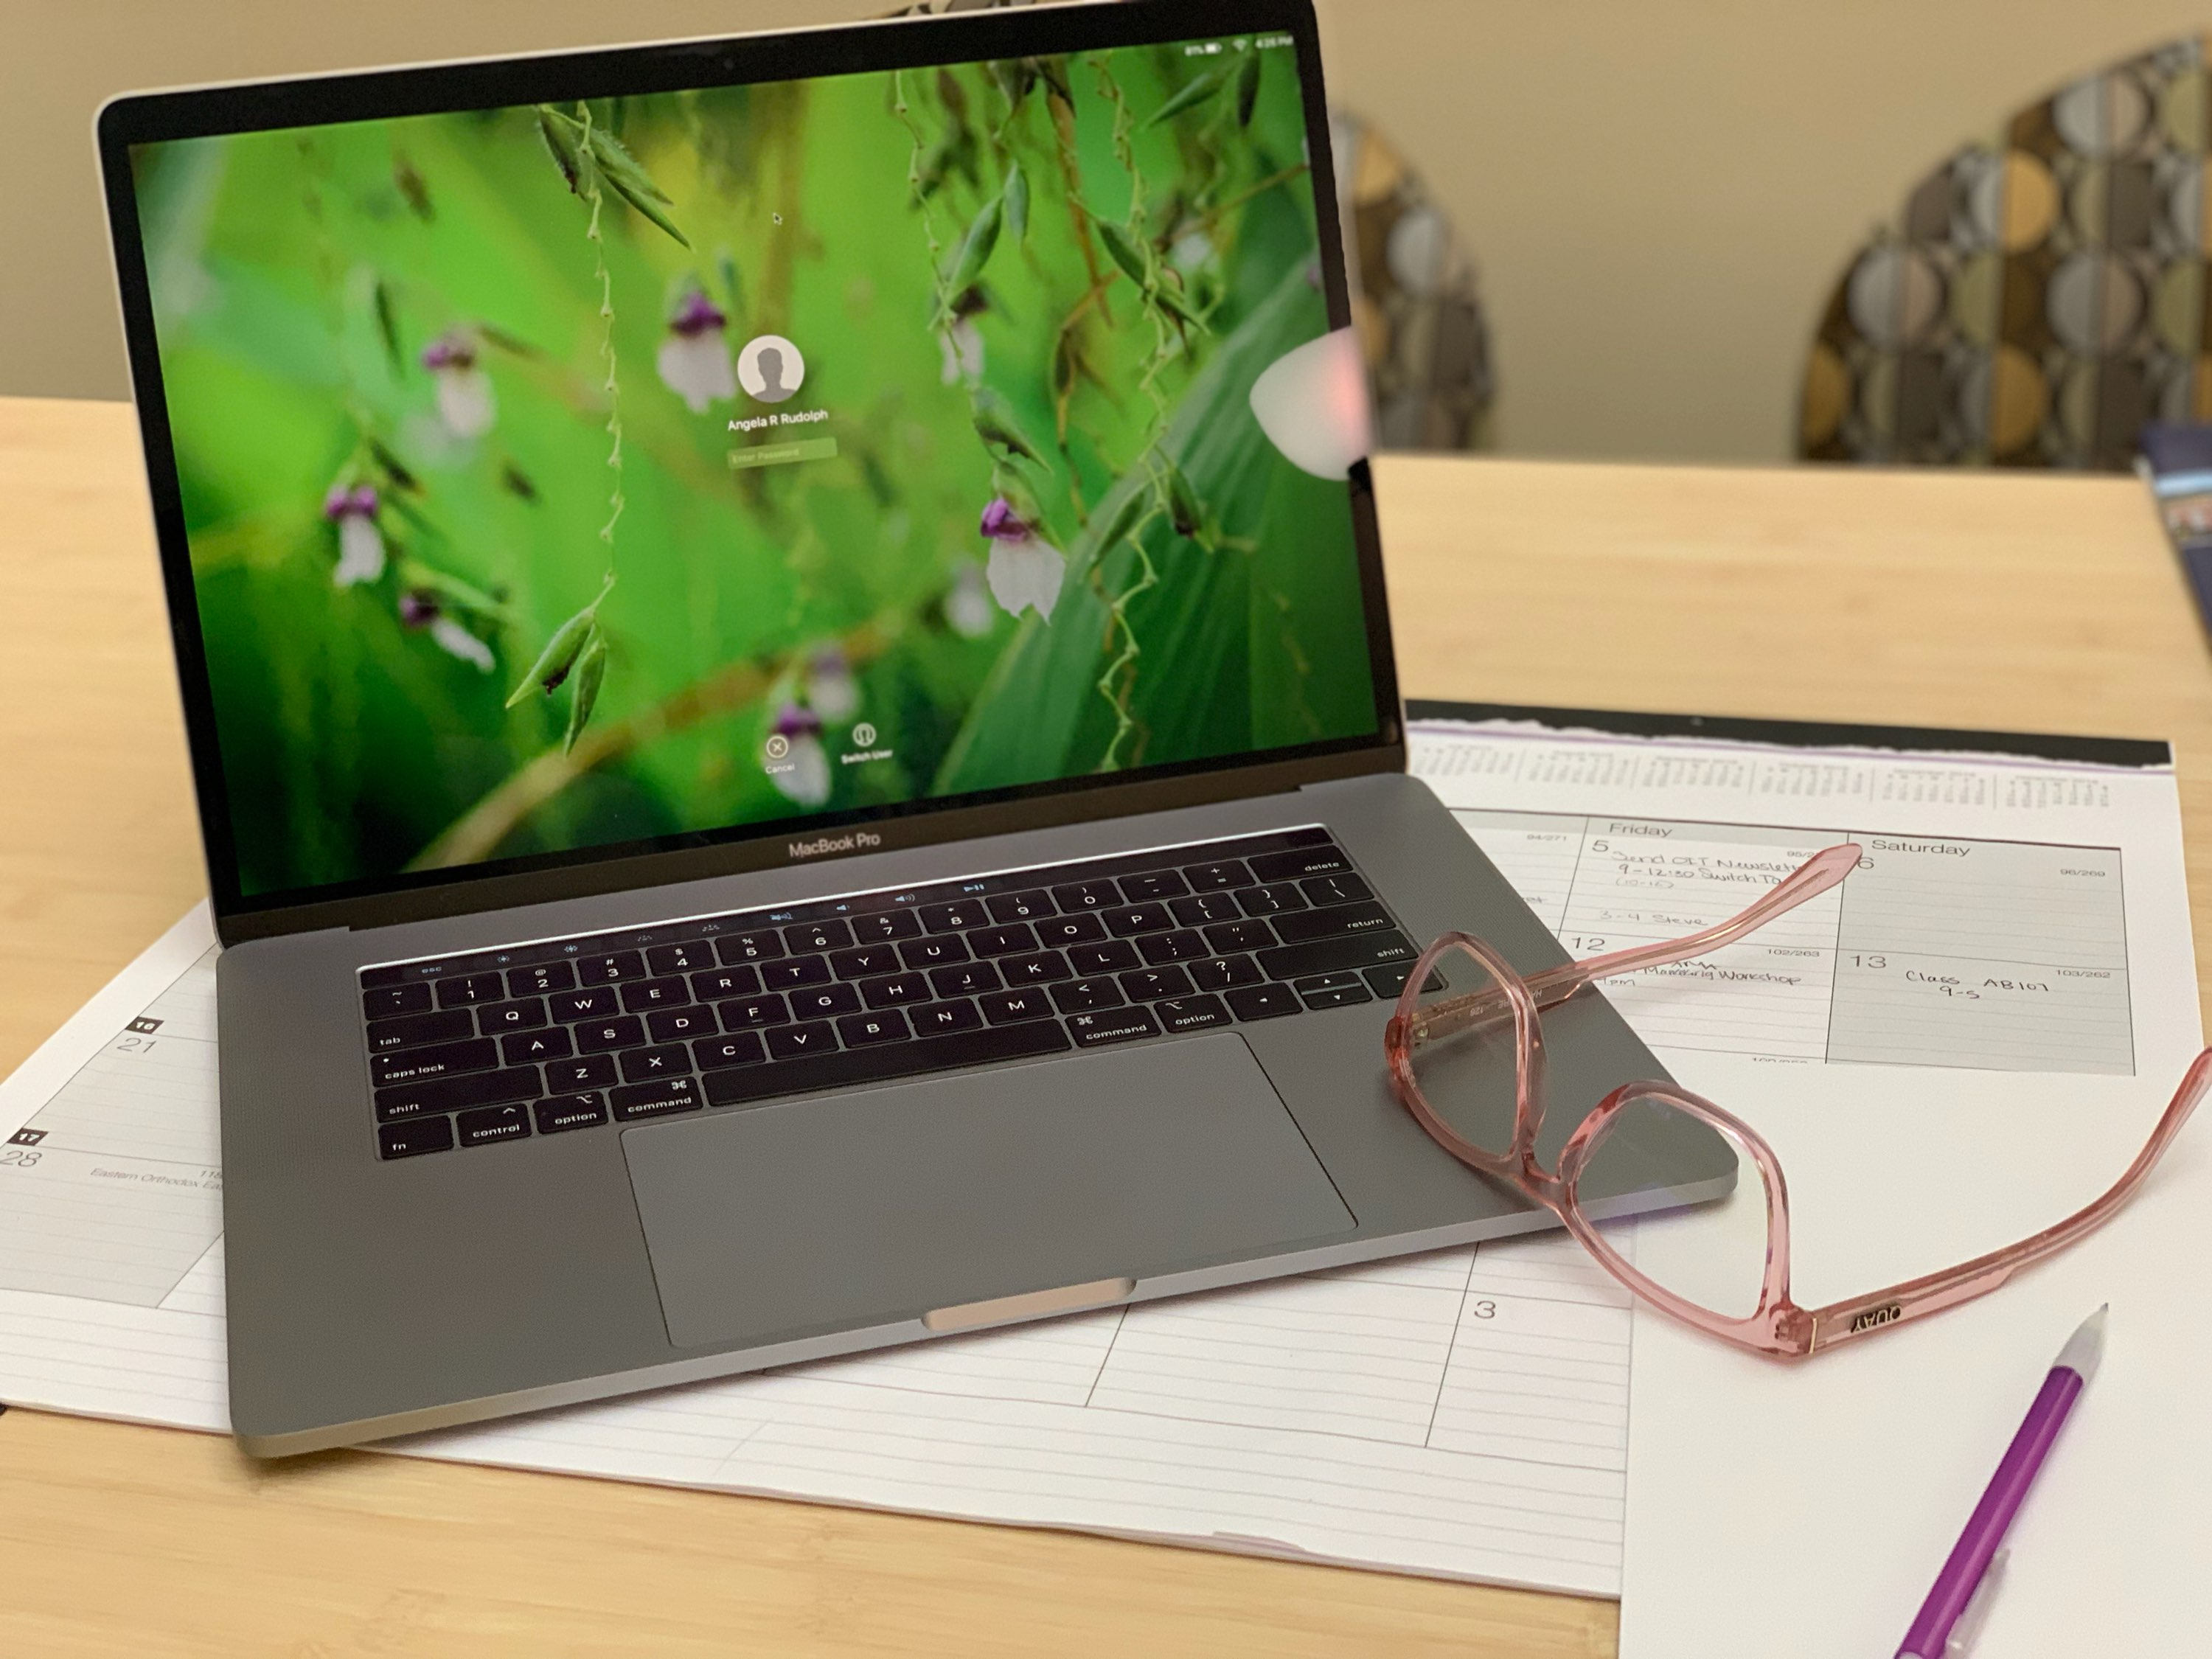 Computer on desk with glasses and paper nearby